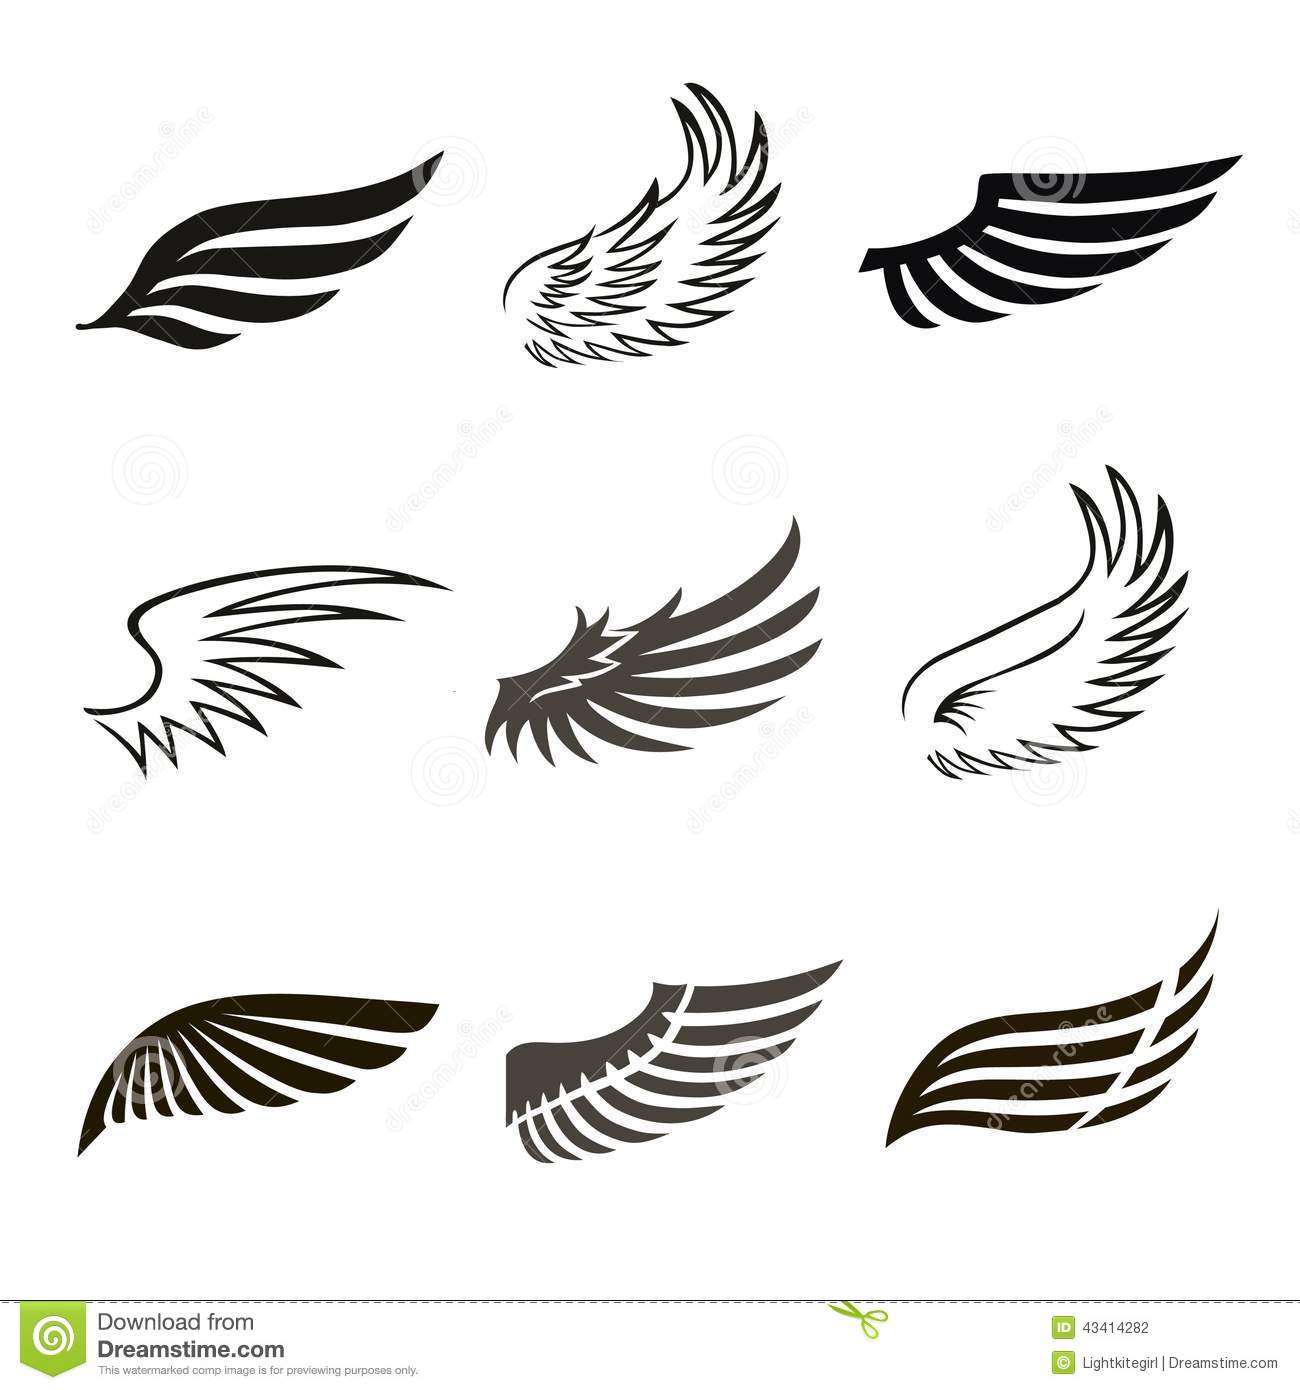 3ab5785f9 Abstract feather angel or bird wings icons set isolated vector illustration.